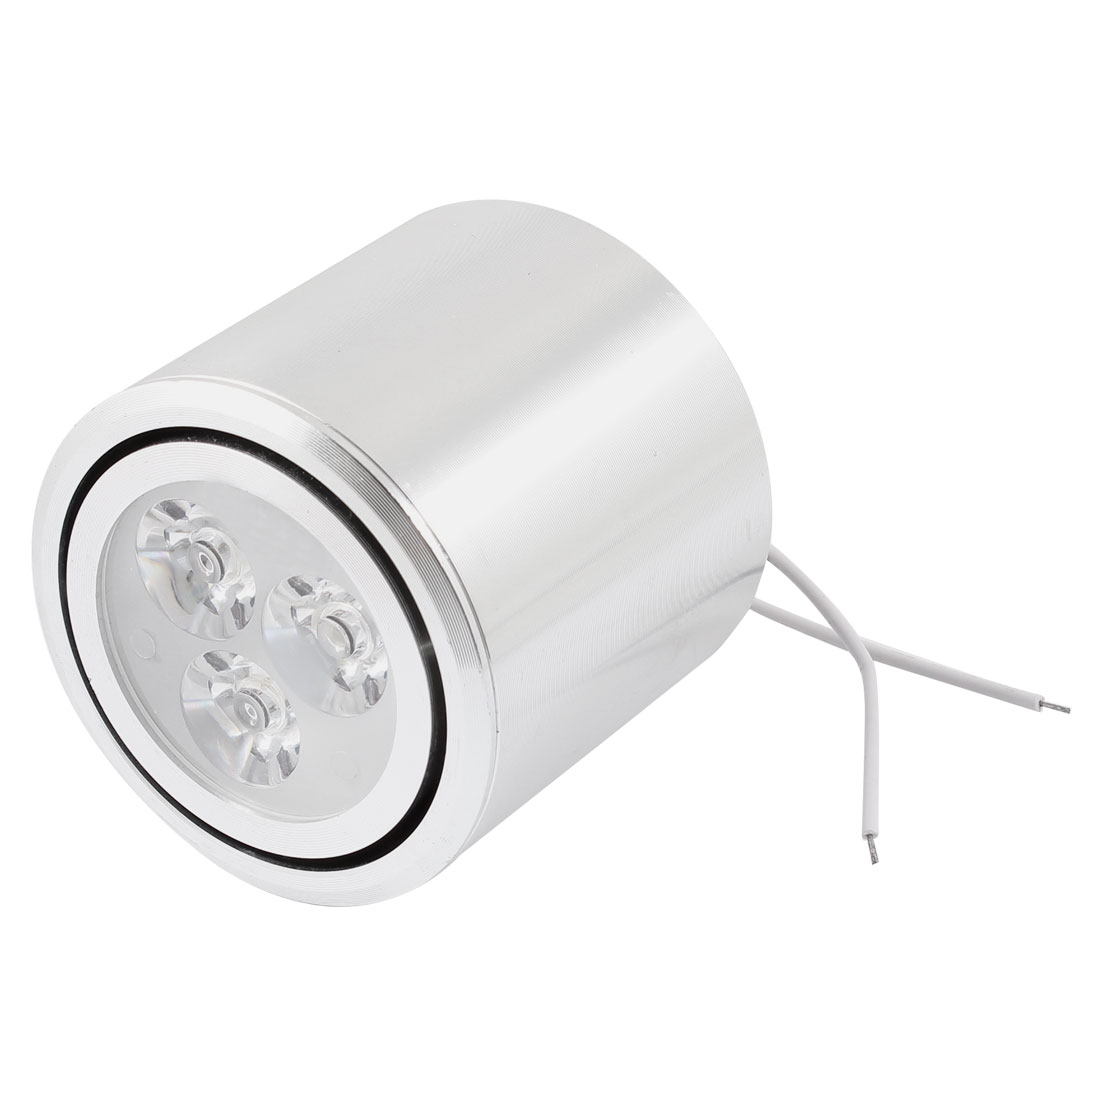 100-110LM 3W 3LED Ceiling Downlight Pure White Energy Saving Spot Bulb